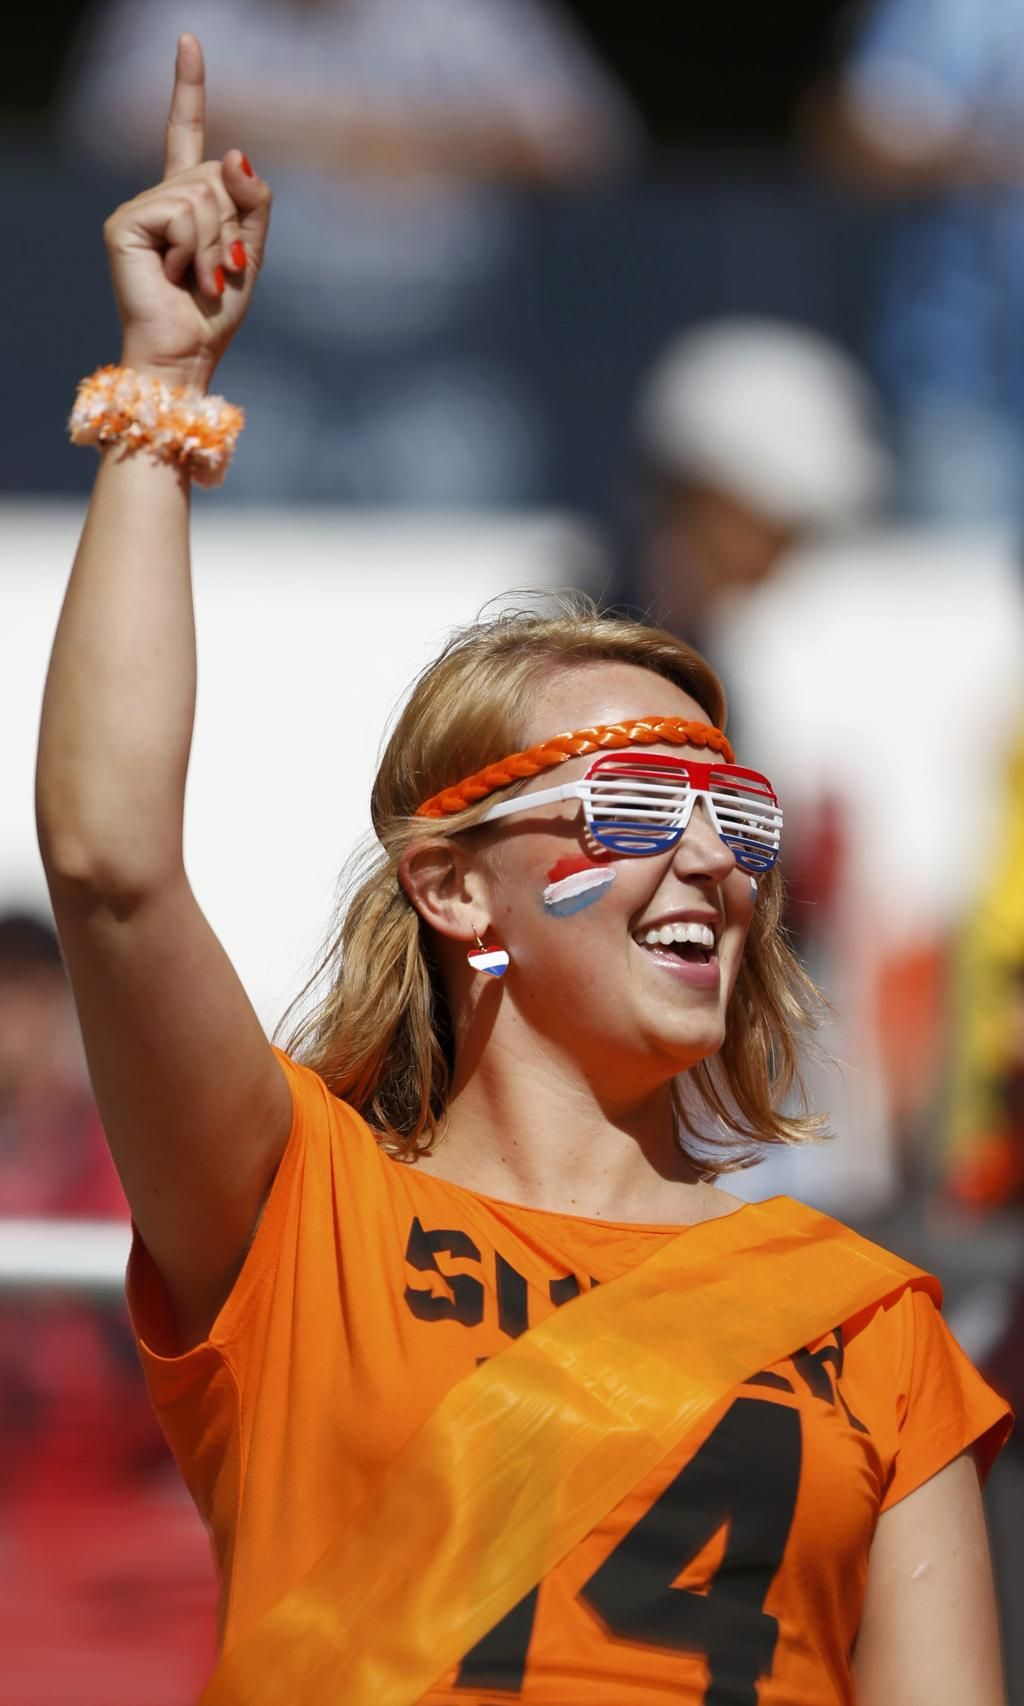 A Netherlands fan waits for the 2014 World Cup Group B